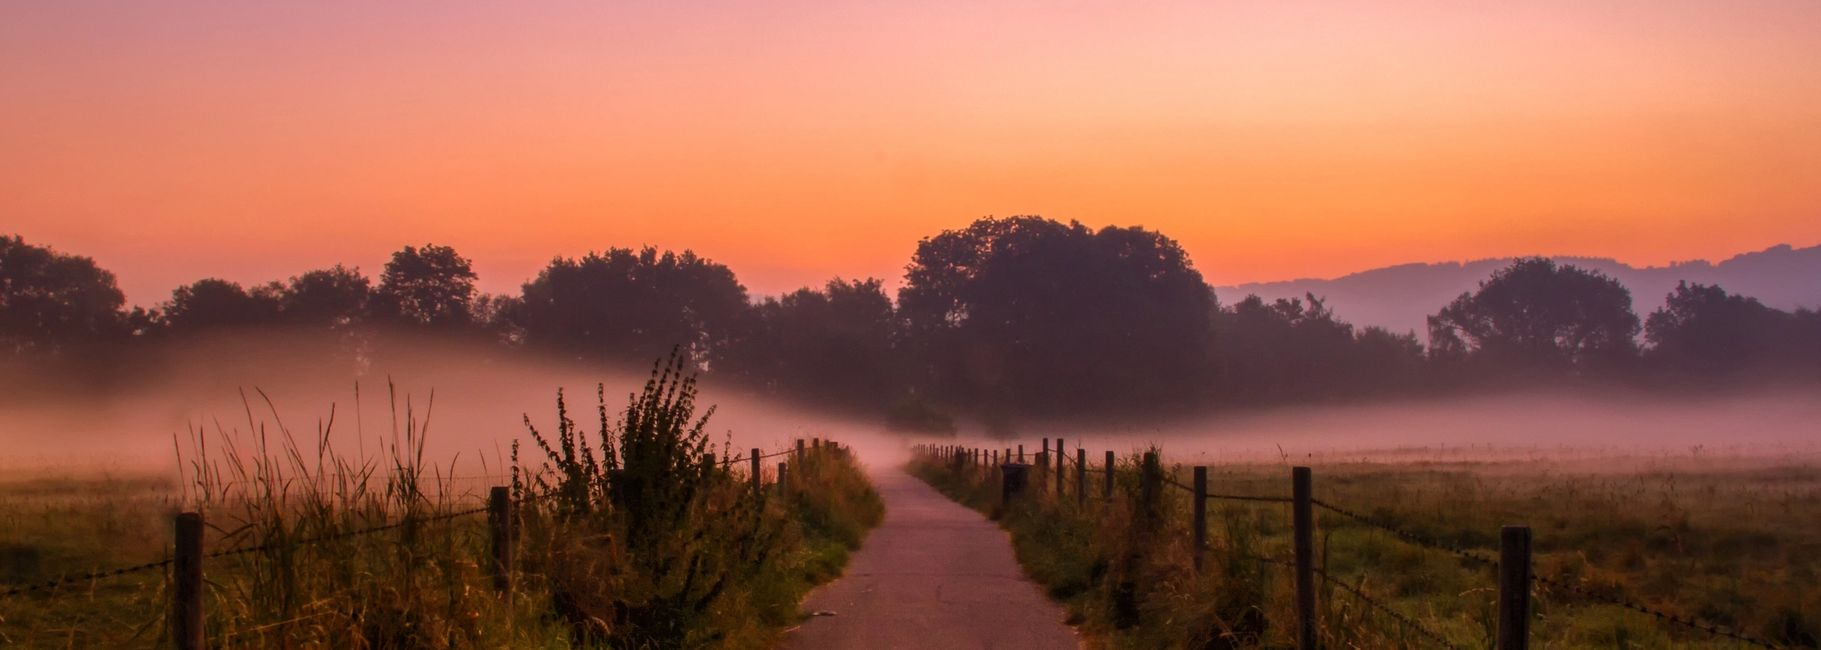 foggy natural landscape of a pathway